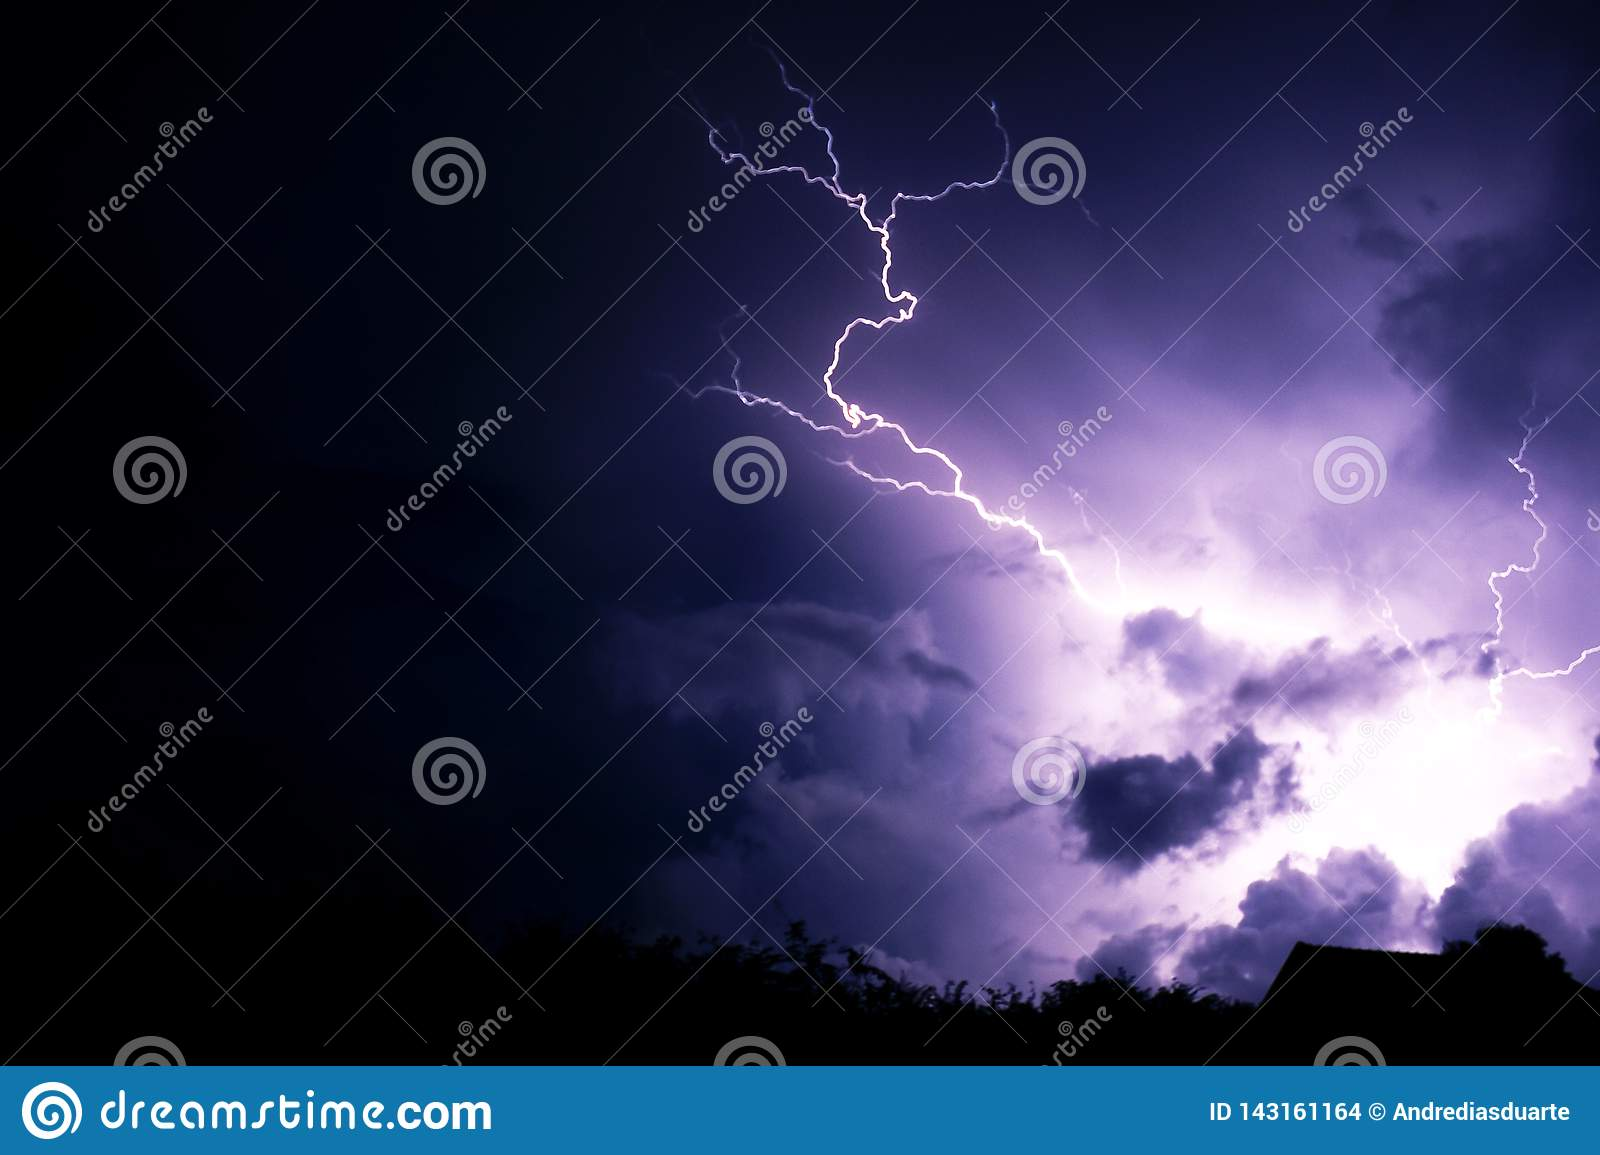 Lightning strike with clouds